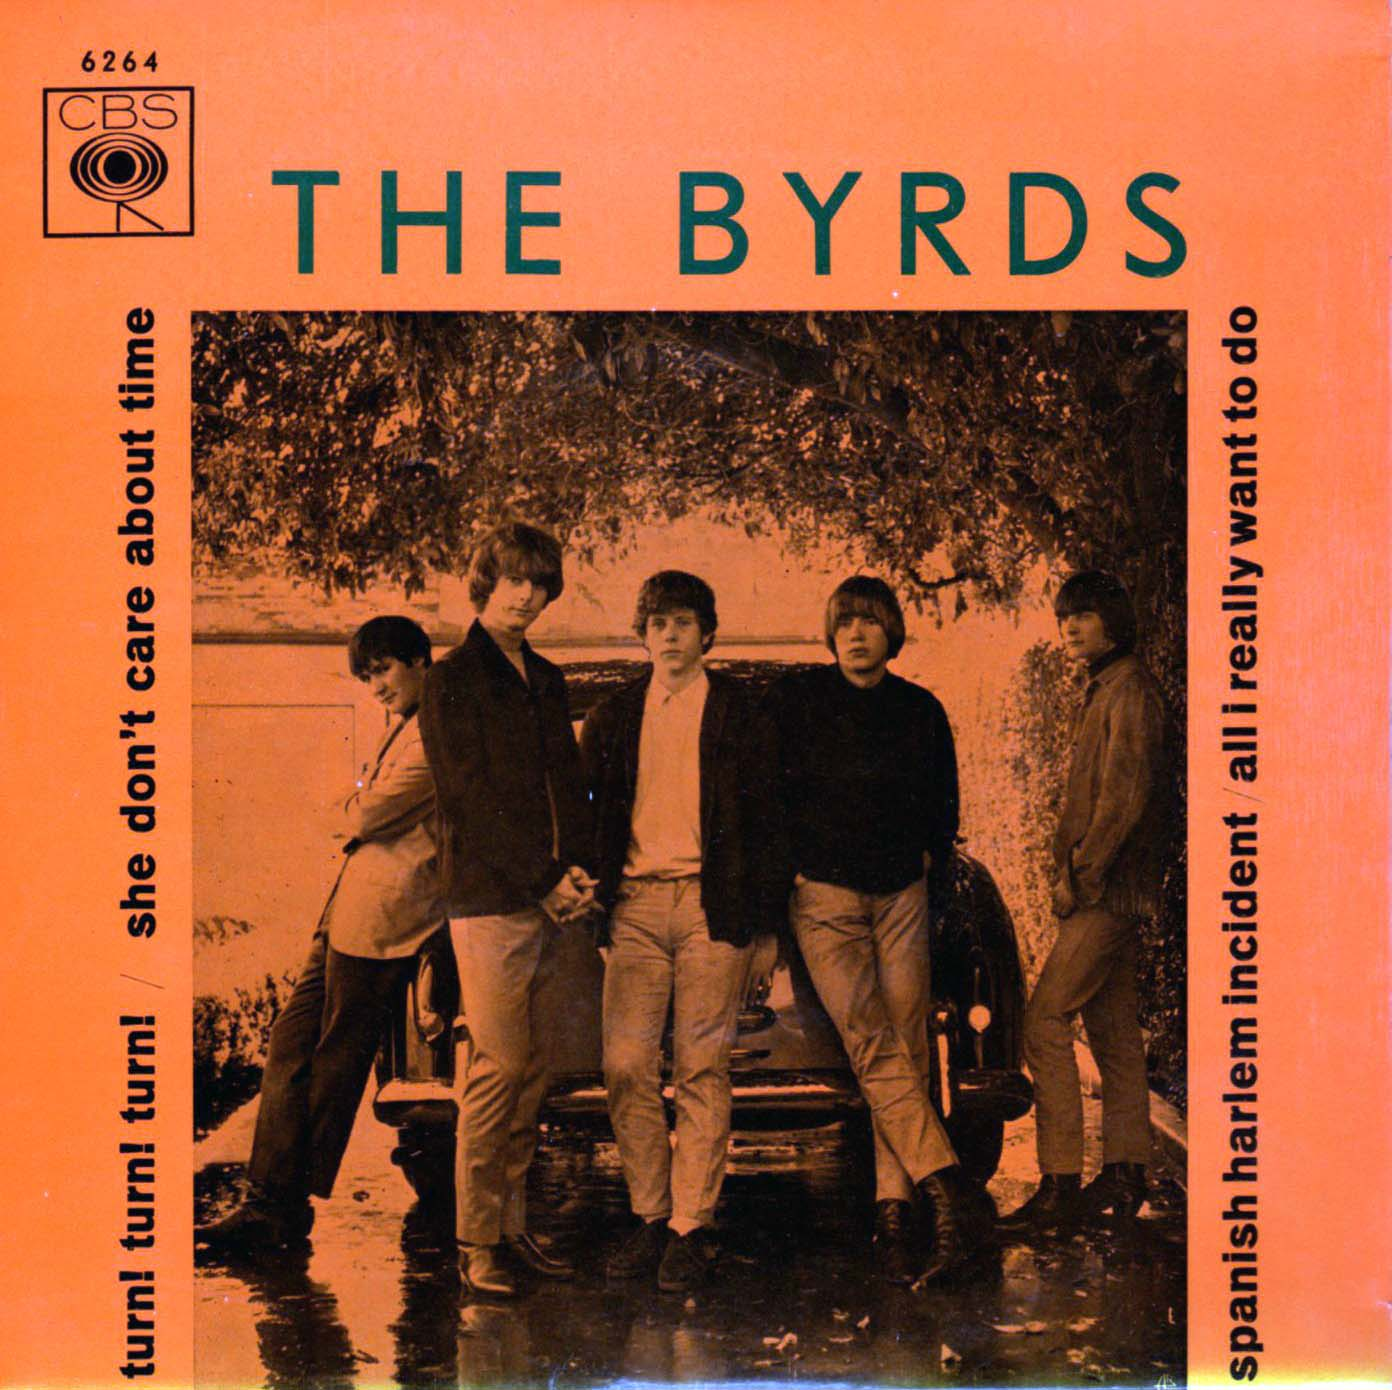 The Byrds Turn Turn Turn Pictures To Pin On Pinterest